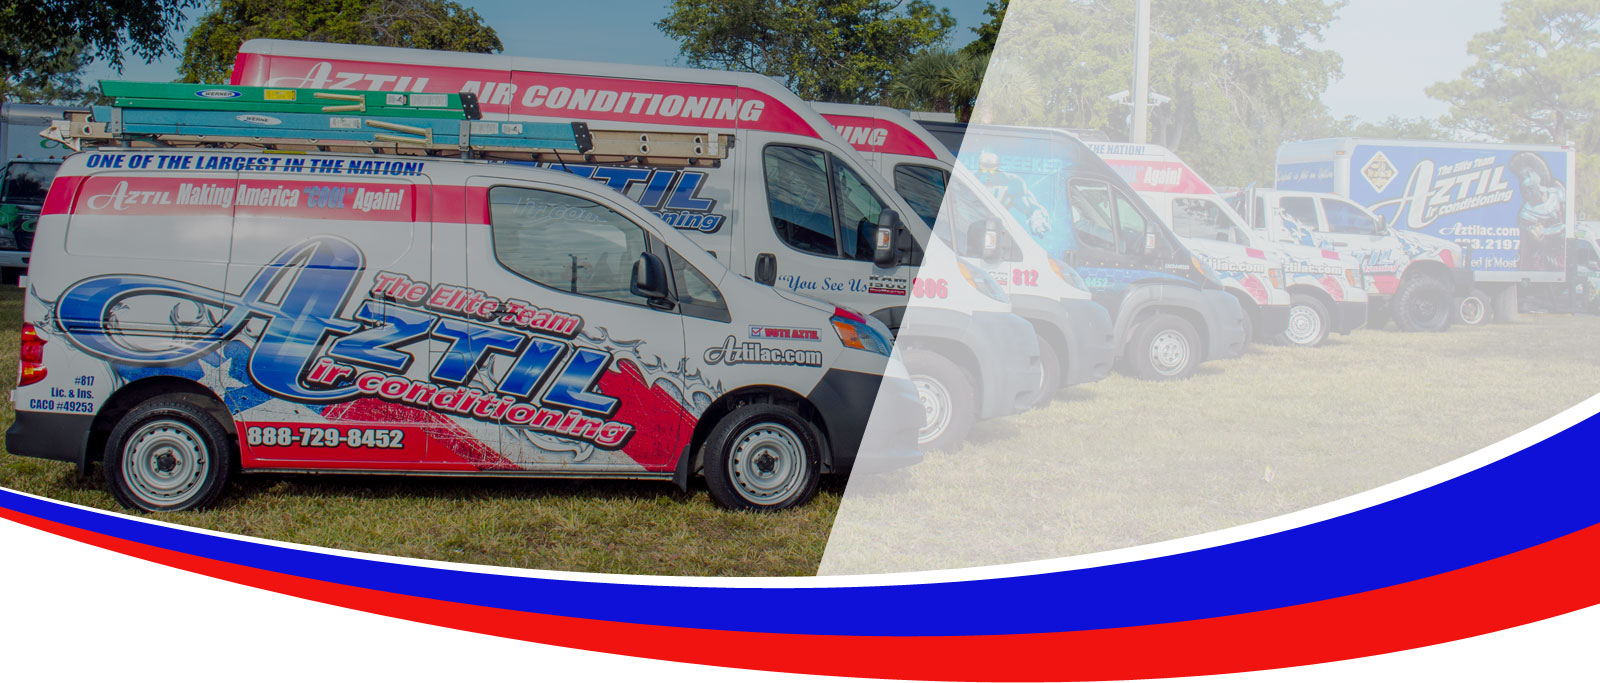 Air Conditioning Services in West Palm Beach